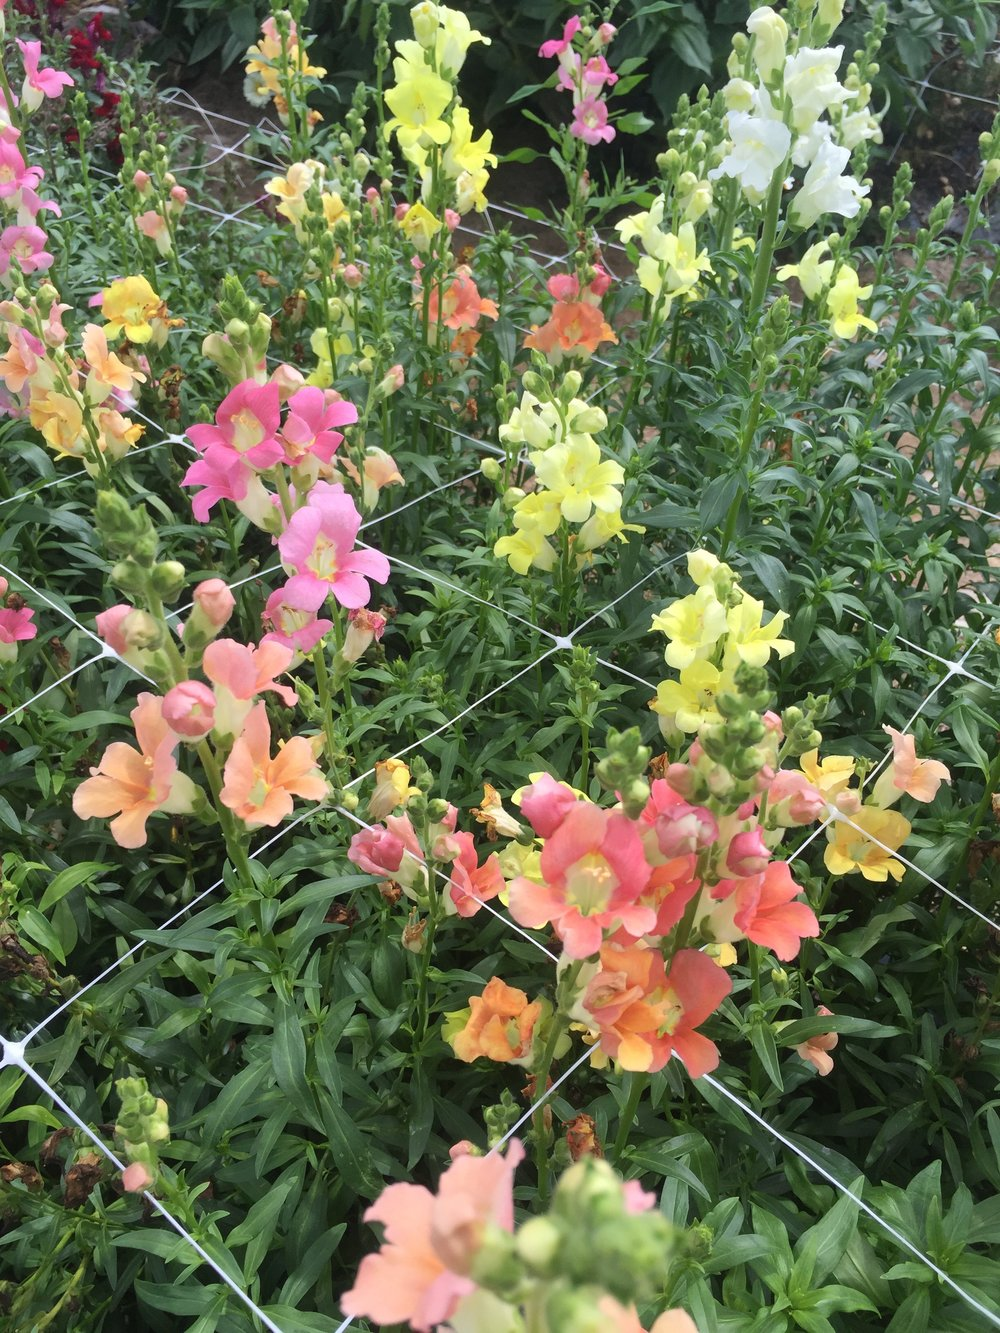 Snapdragon, 'Chantilly mix'